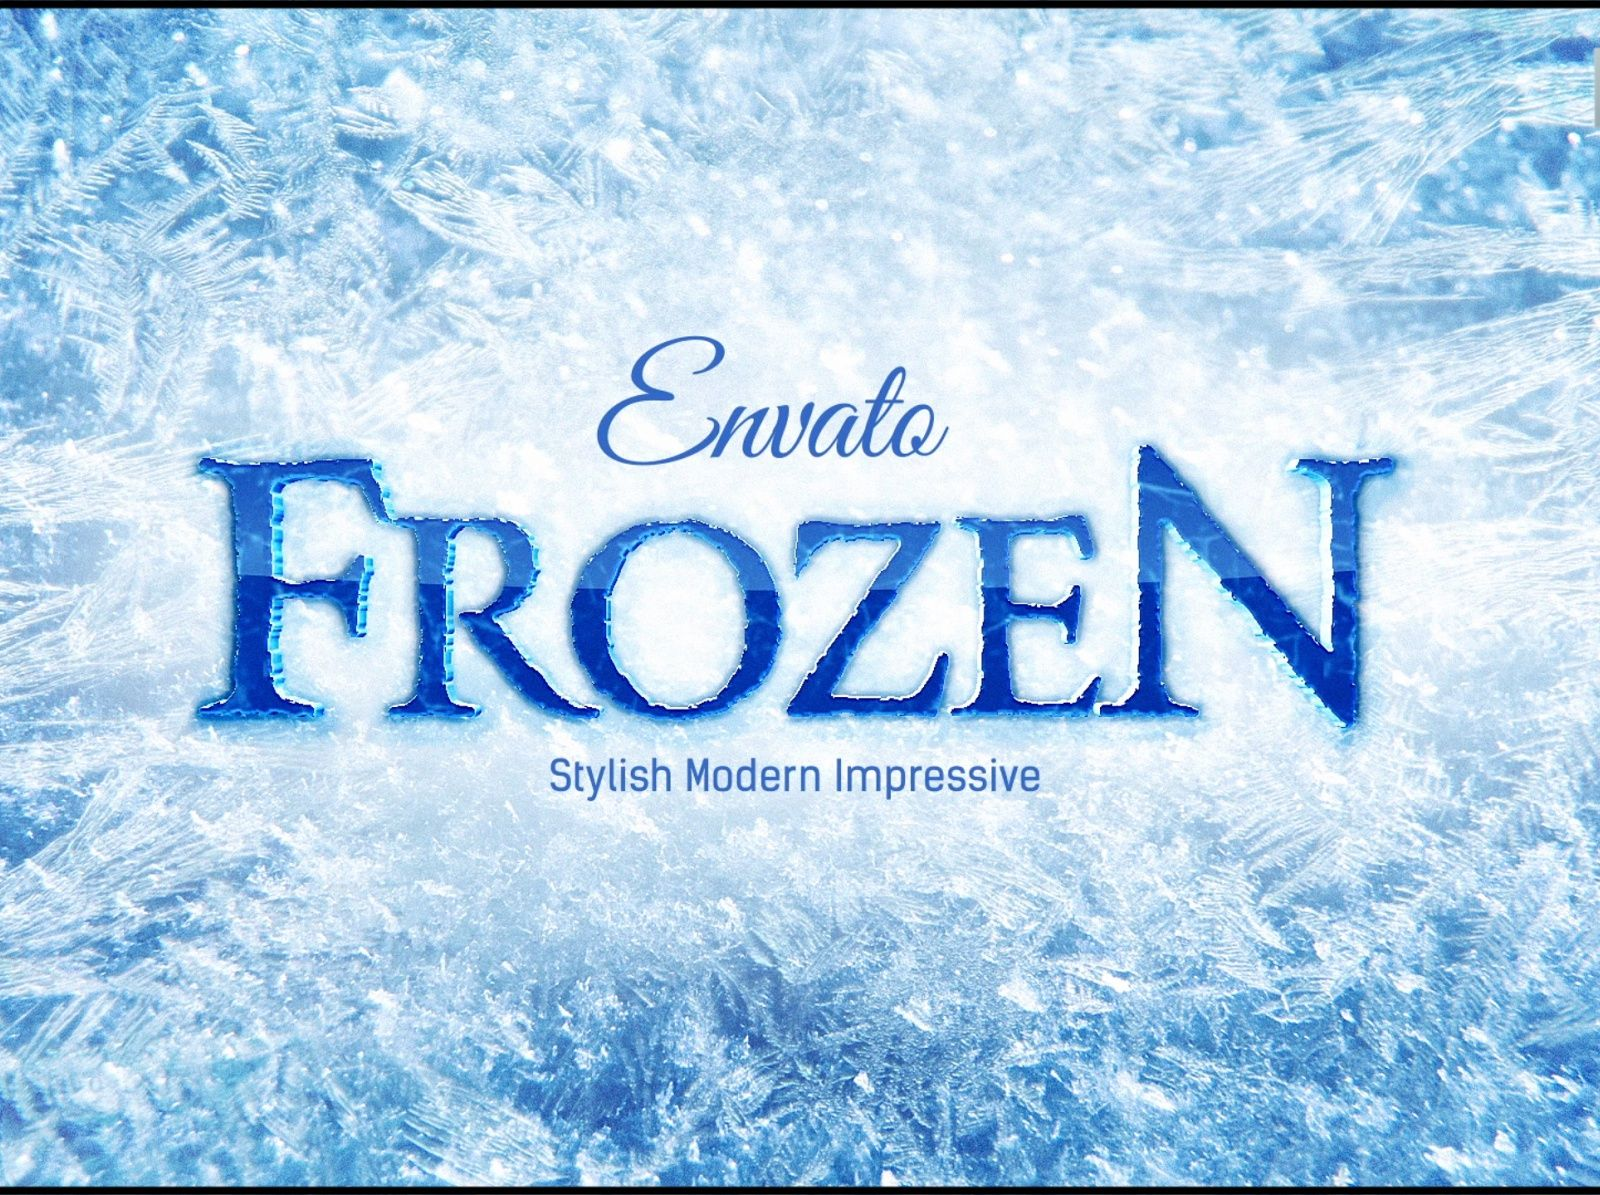 Frozen Ice Logo After Effects Template Ice logo, After